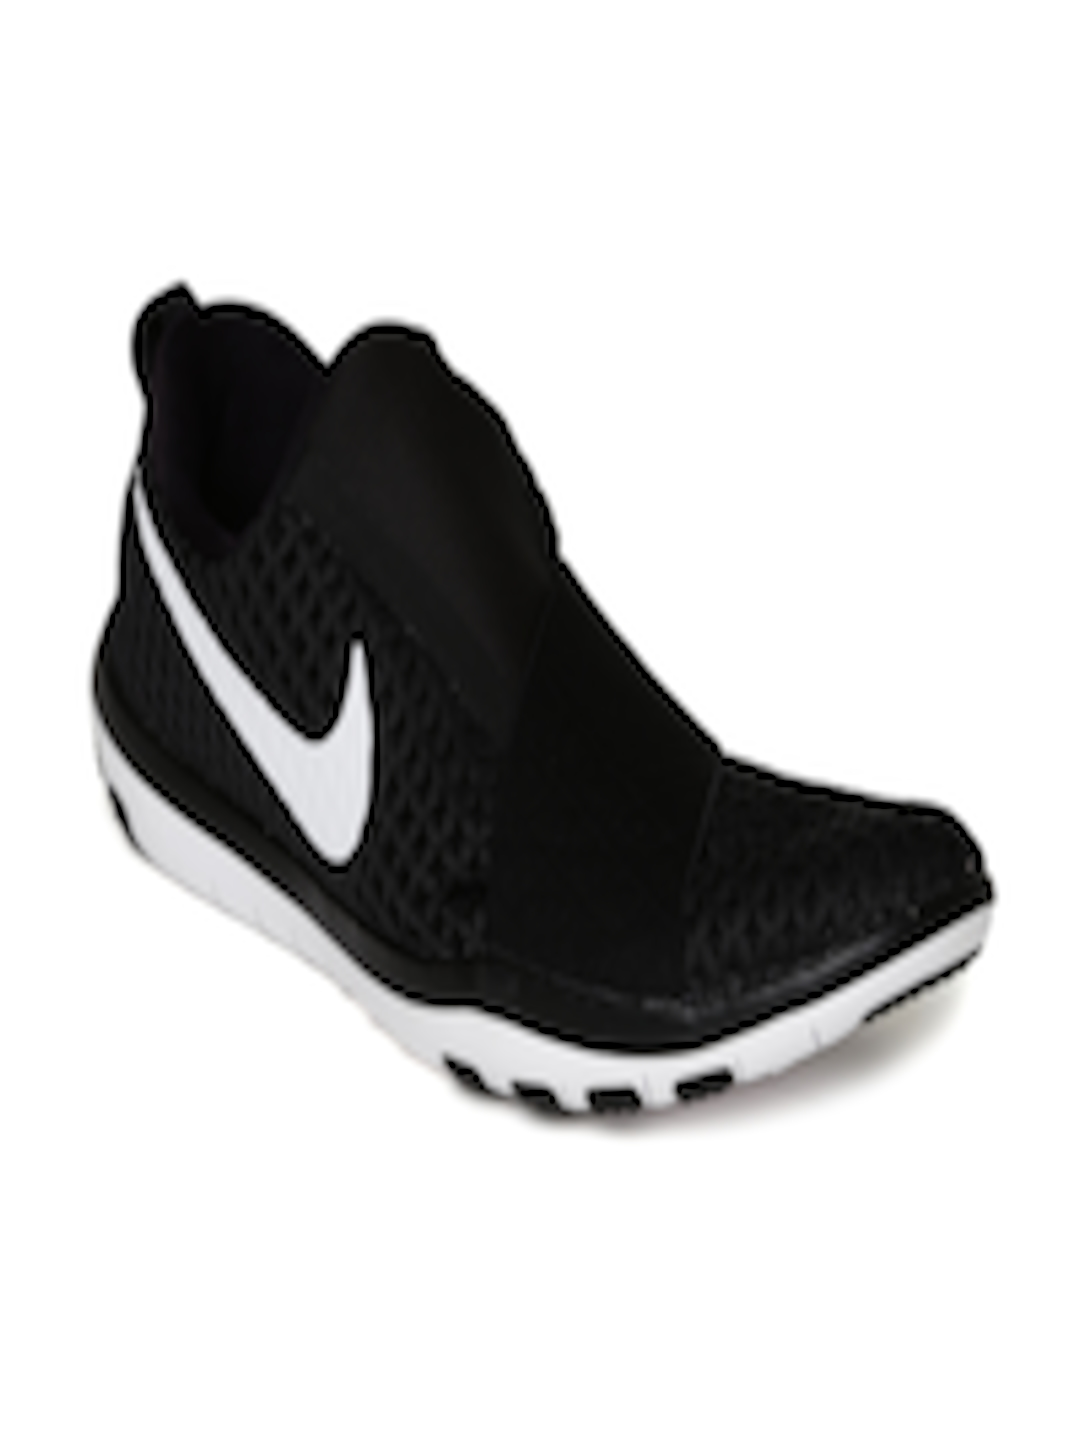 timeless design 6523b 89e7f Buy Nike Women Black Free Connect Training Shoes - Sports Shoes for Women  1421014   Myntra